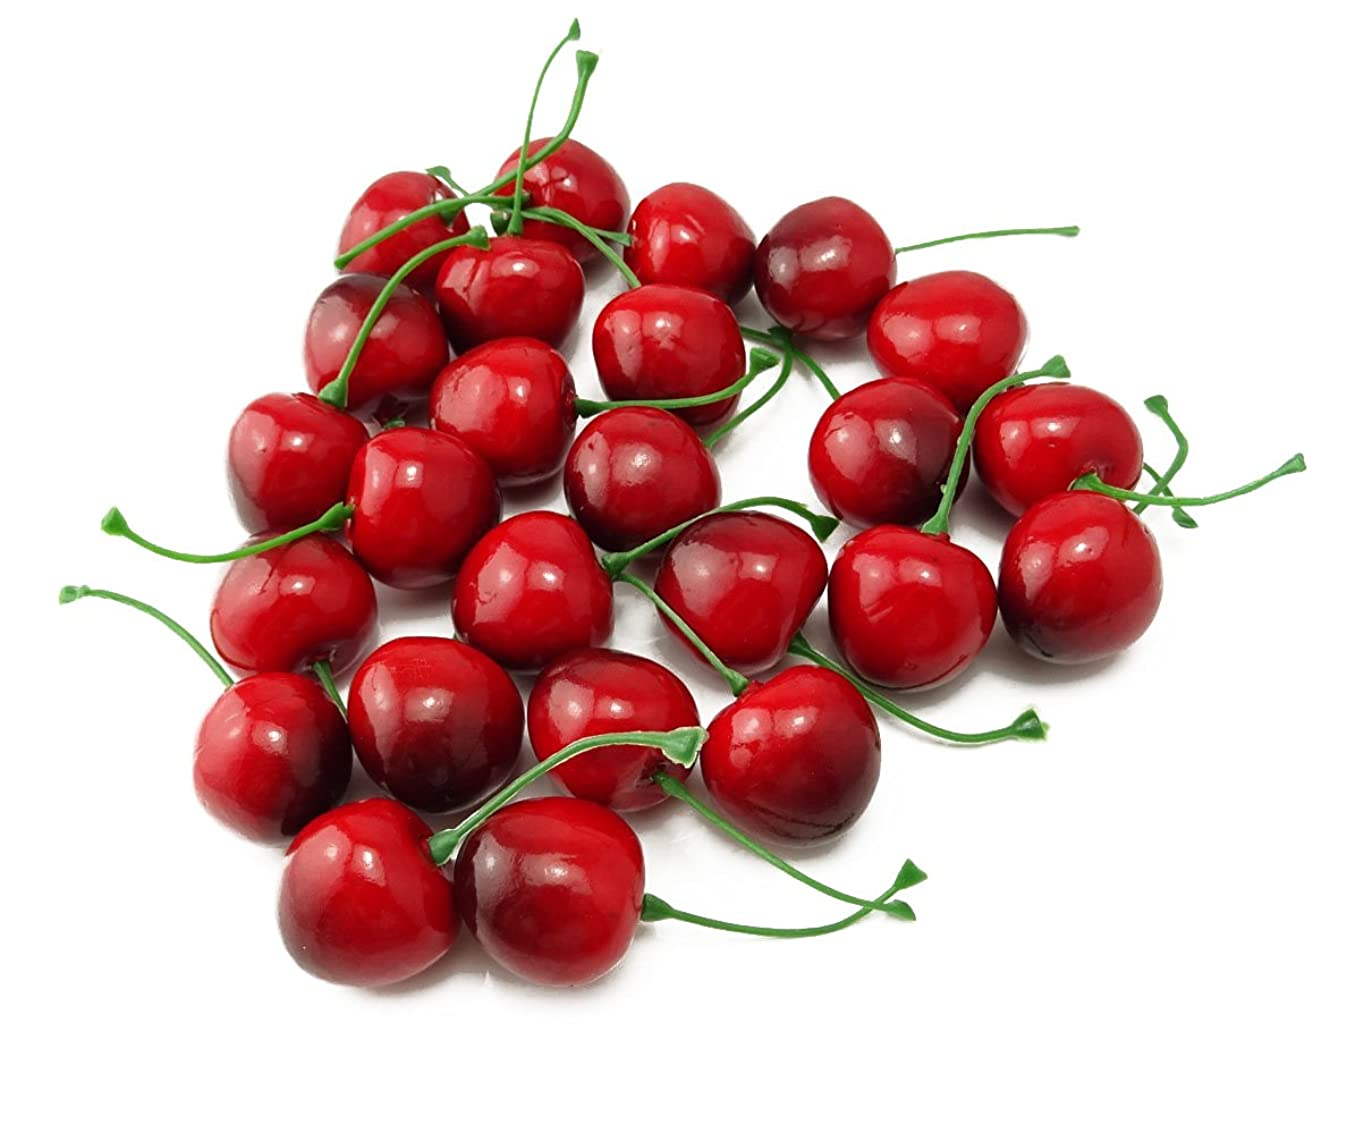 yueton Pack of 25 Artificial Lifelike Simulation Small Red Black Cherries Fake Fruit Model Home House Kitchen Party Decoration Desk Ornament